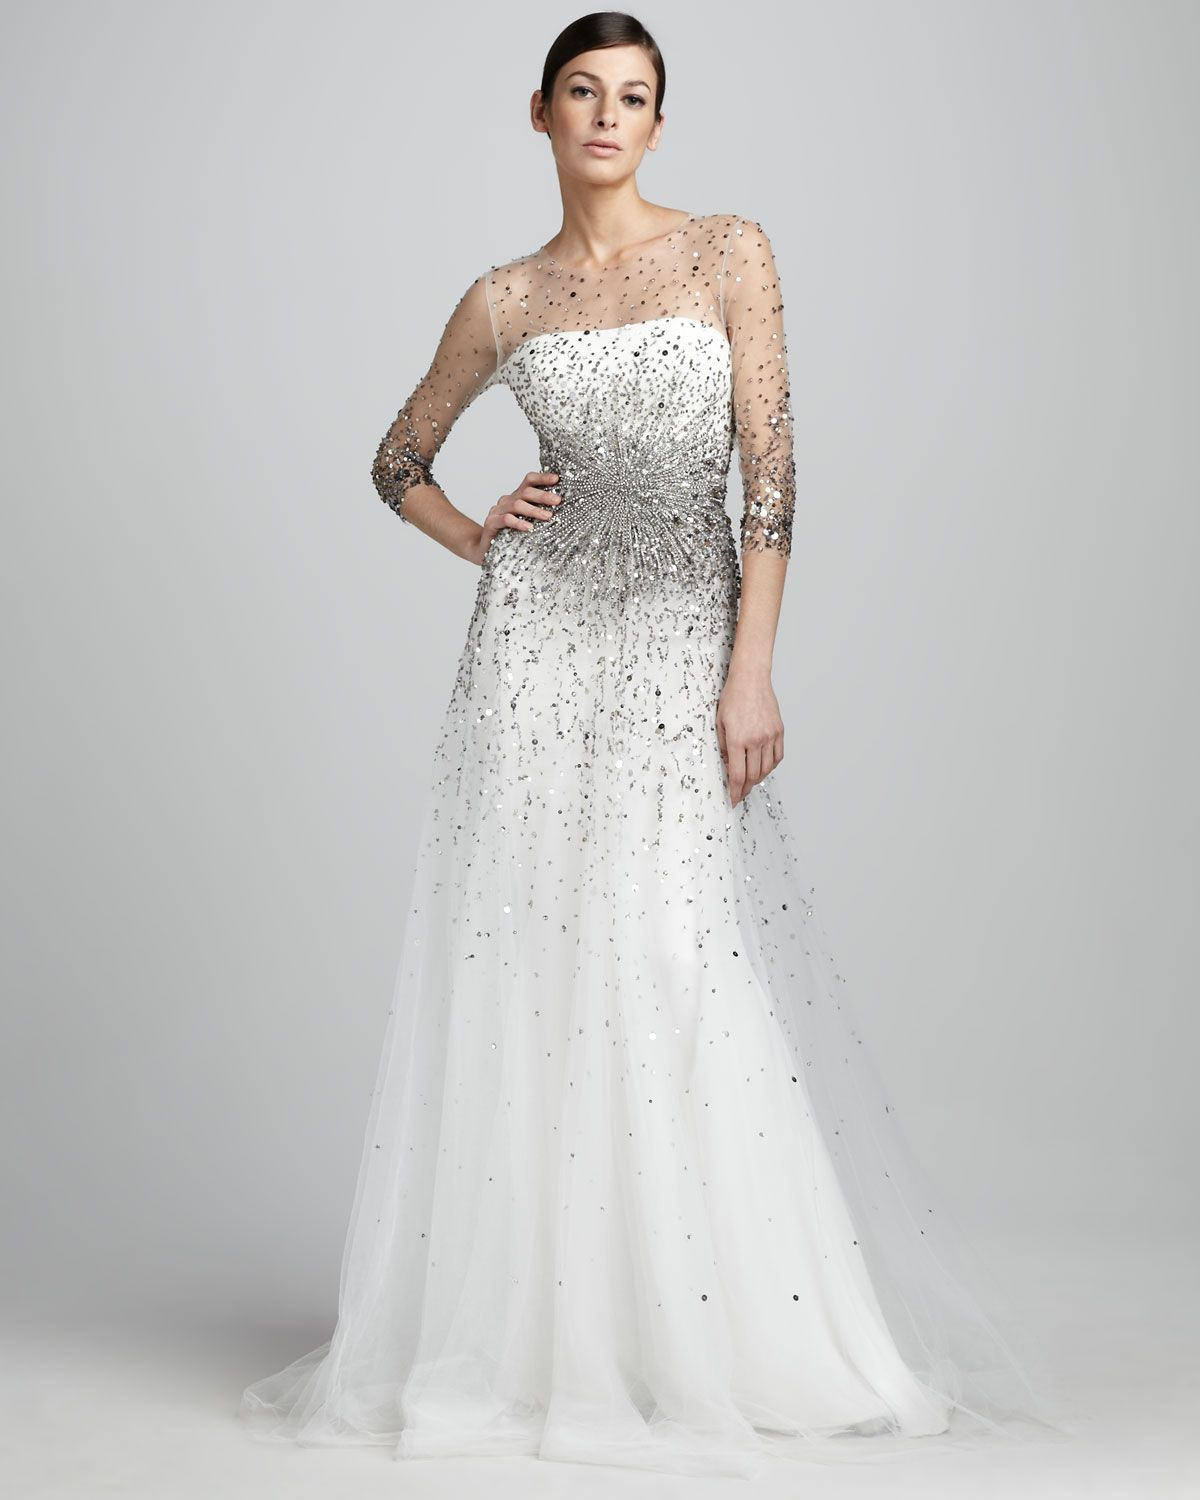 Marchesa bridal 2012 wedding splurge top 10 for fall 2012 sequined illusion gown by marchesa couture at neiman marcus marchesa couture sequined illusion gown illusion neckline and sleeves with sequins ombrellifo Image collections